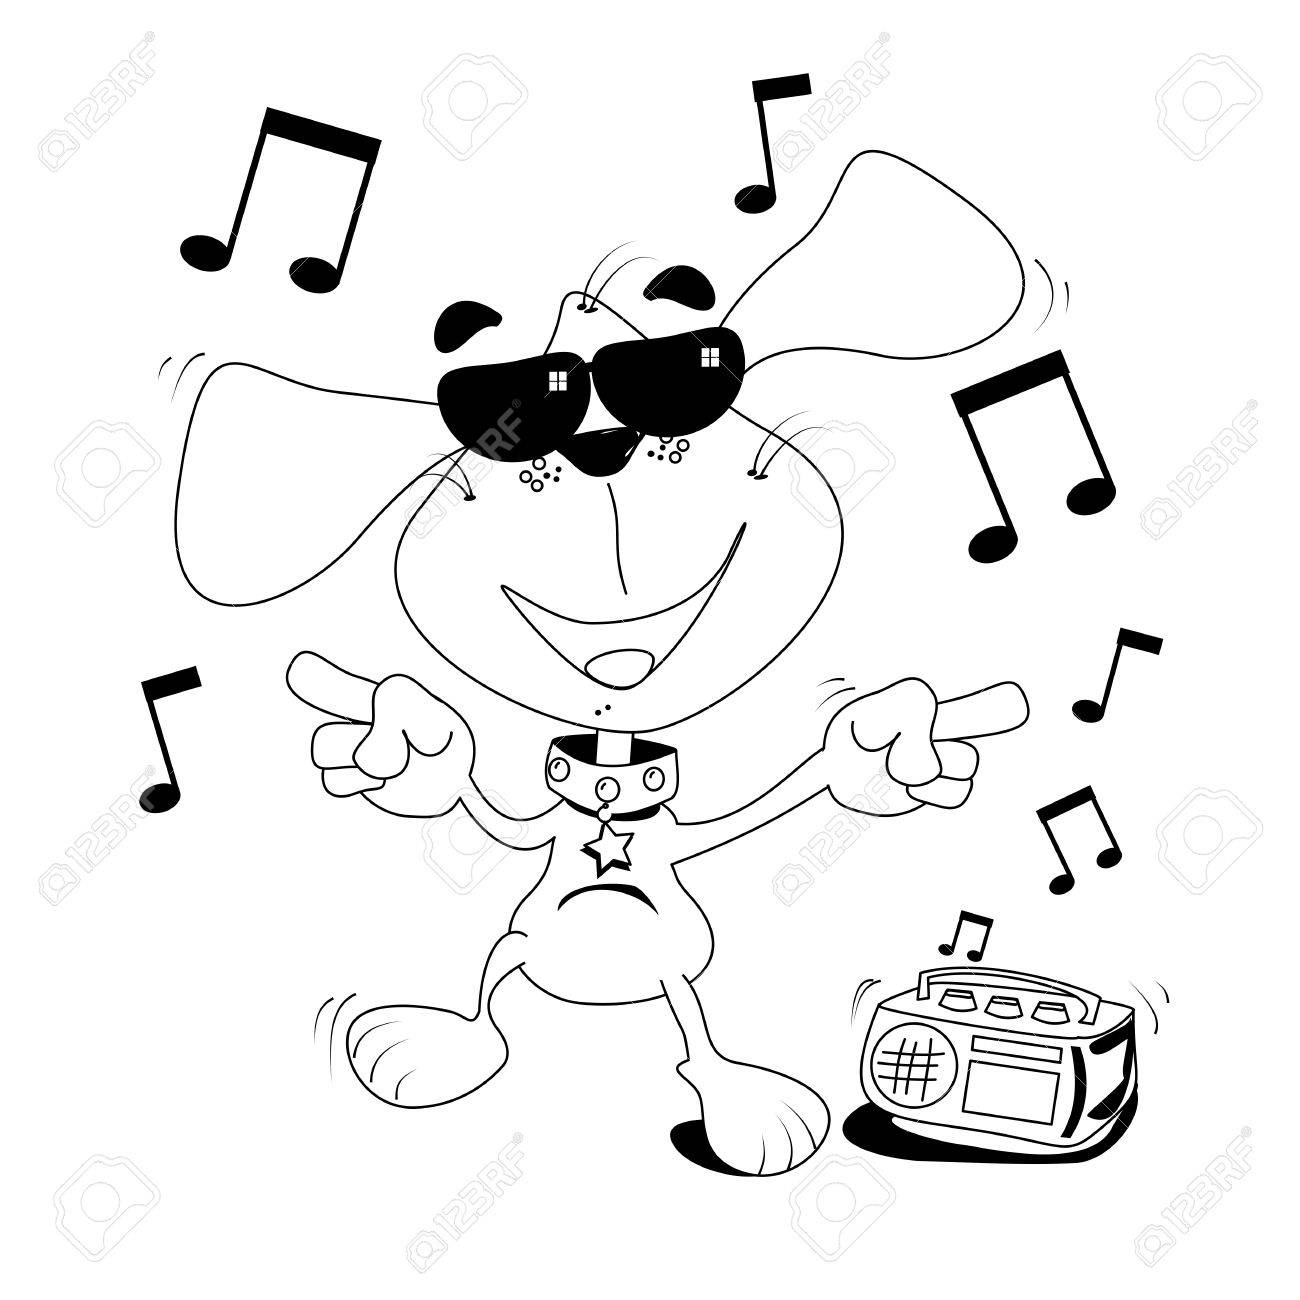 Cartoon Dog Dancing Outline For Colouring In Book Royalty Free ...